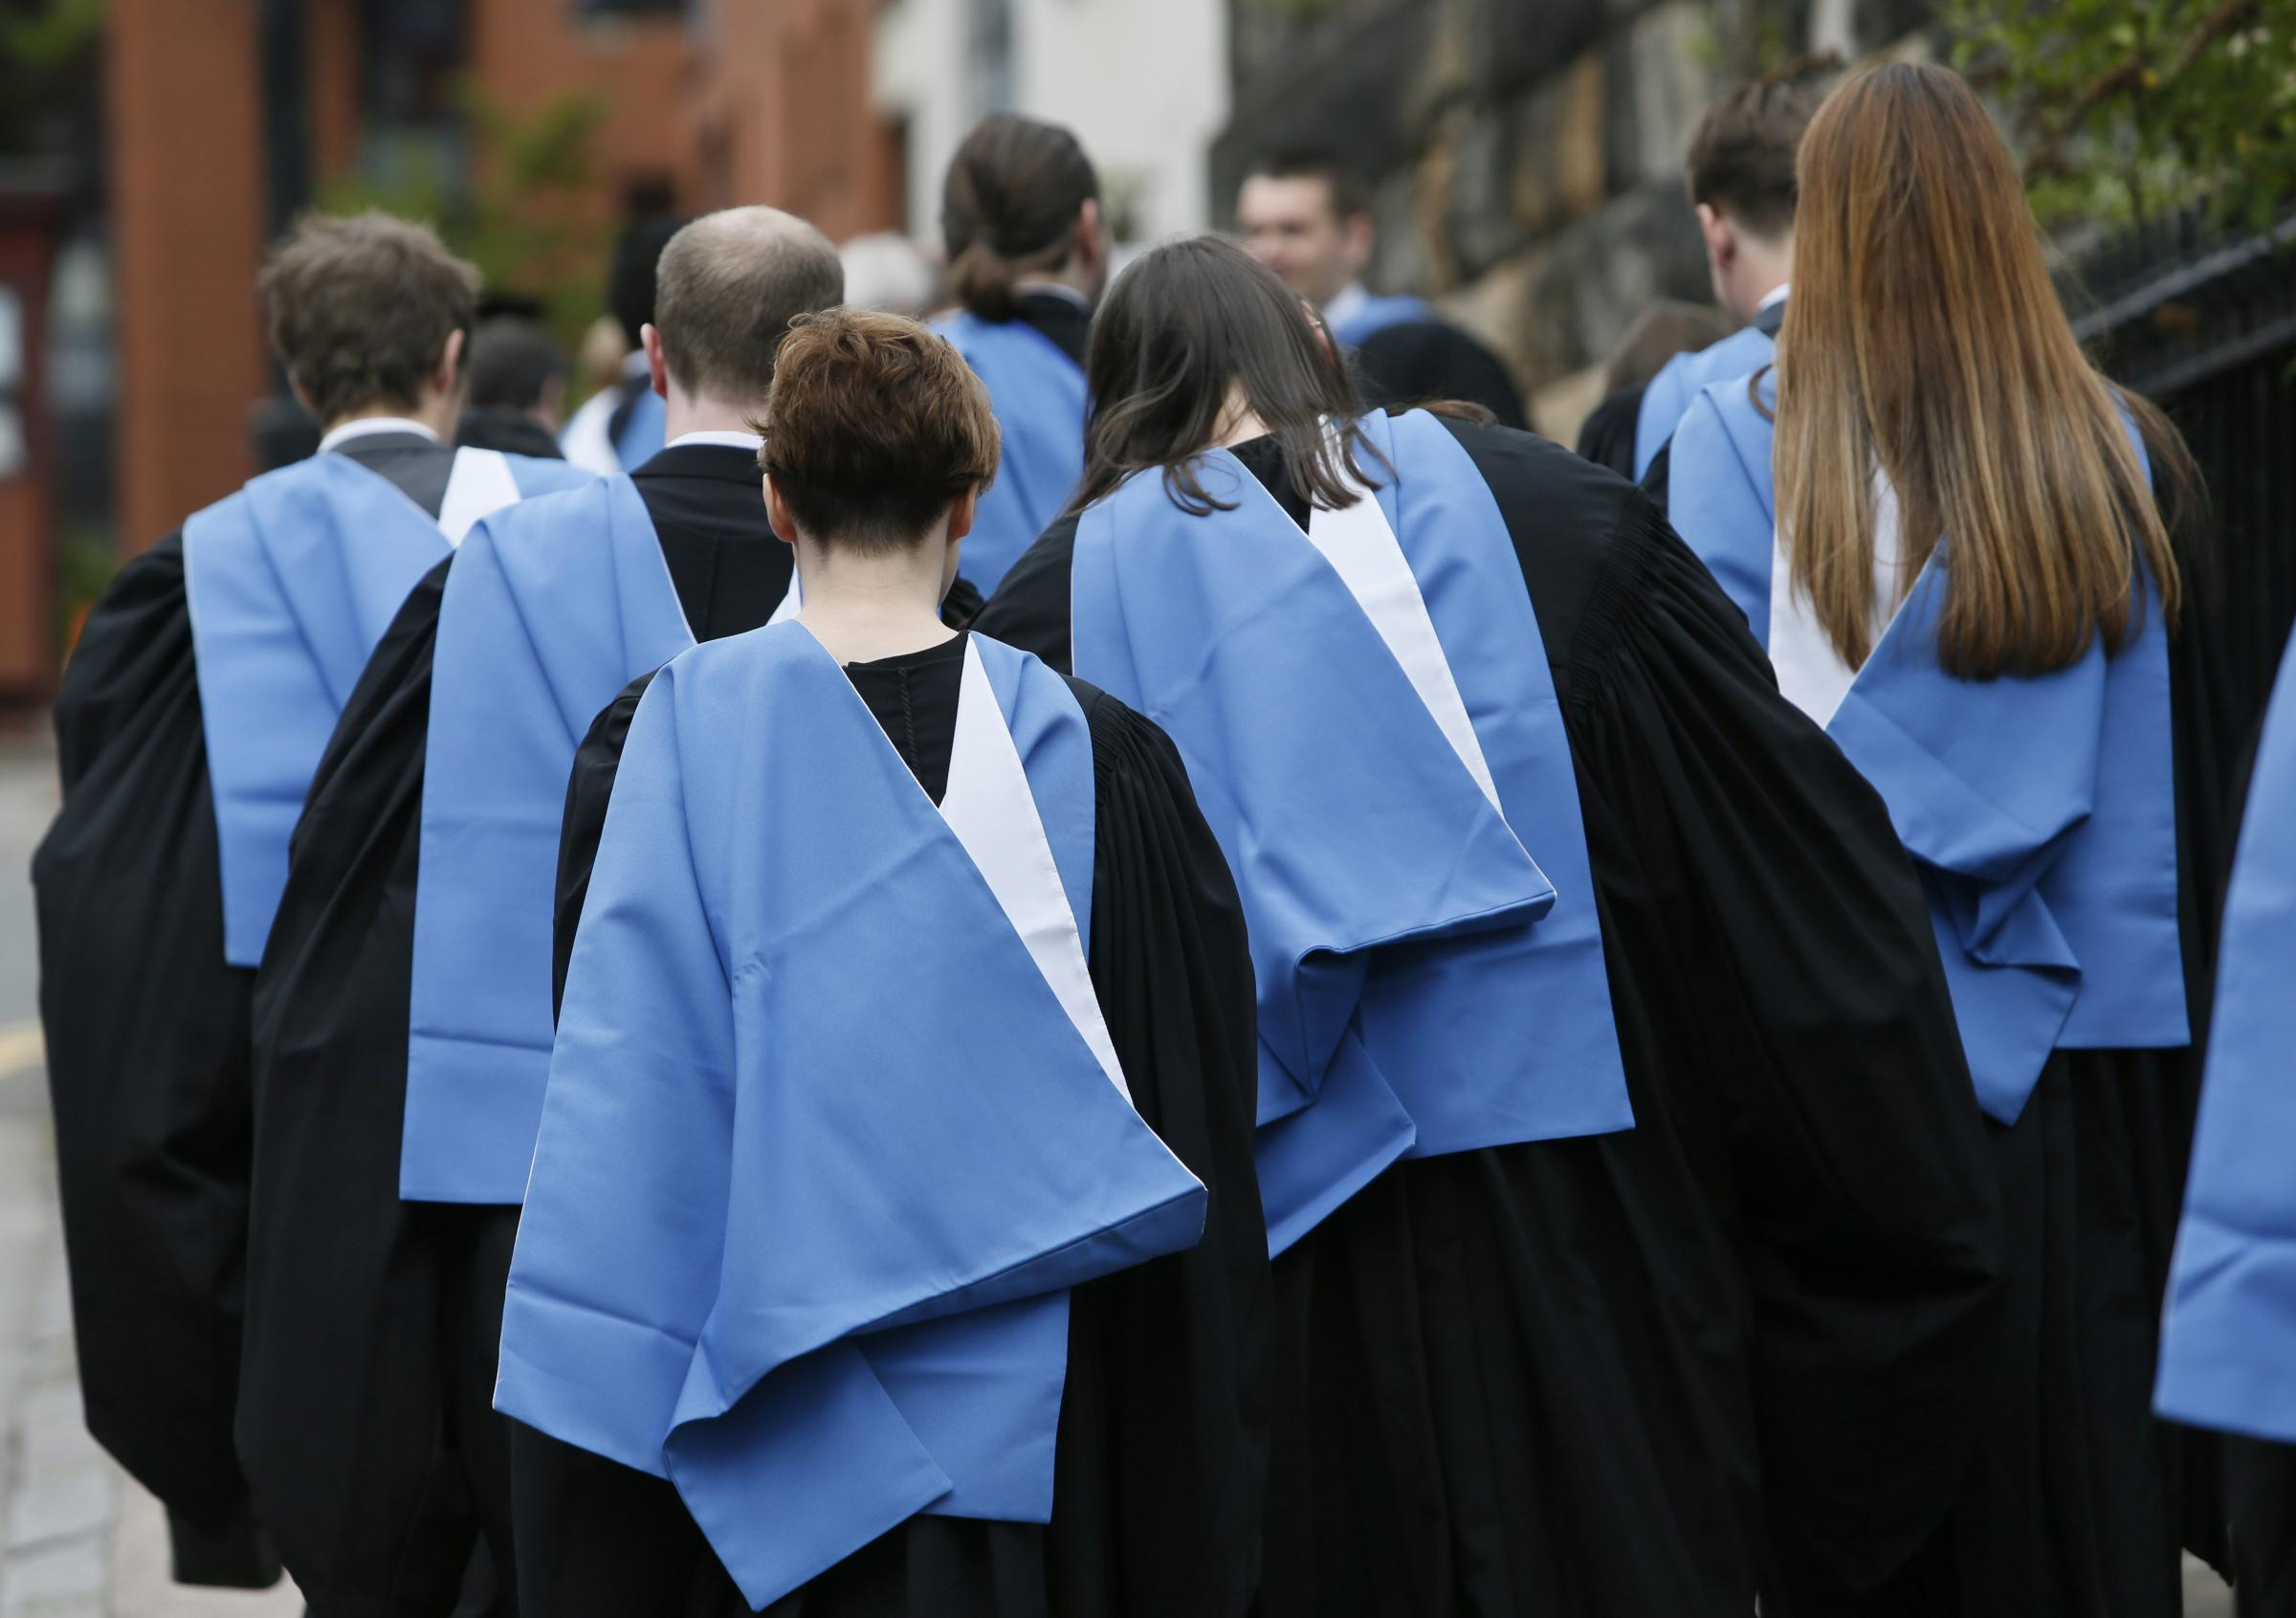 Glasgow schools: City wide table of leaver destinations, job, university, college or jobless